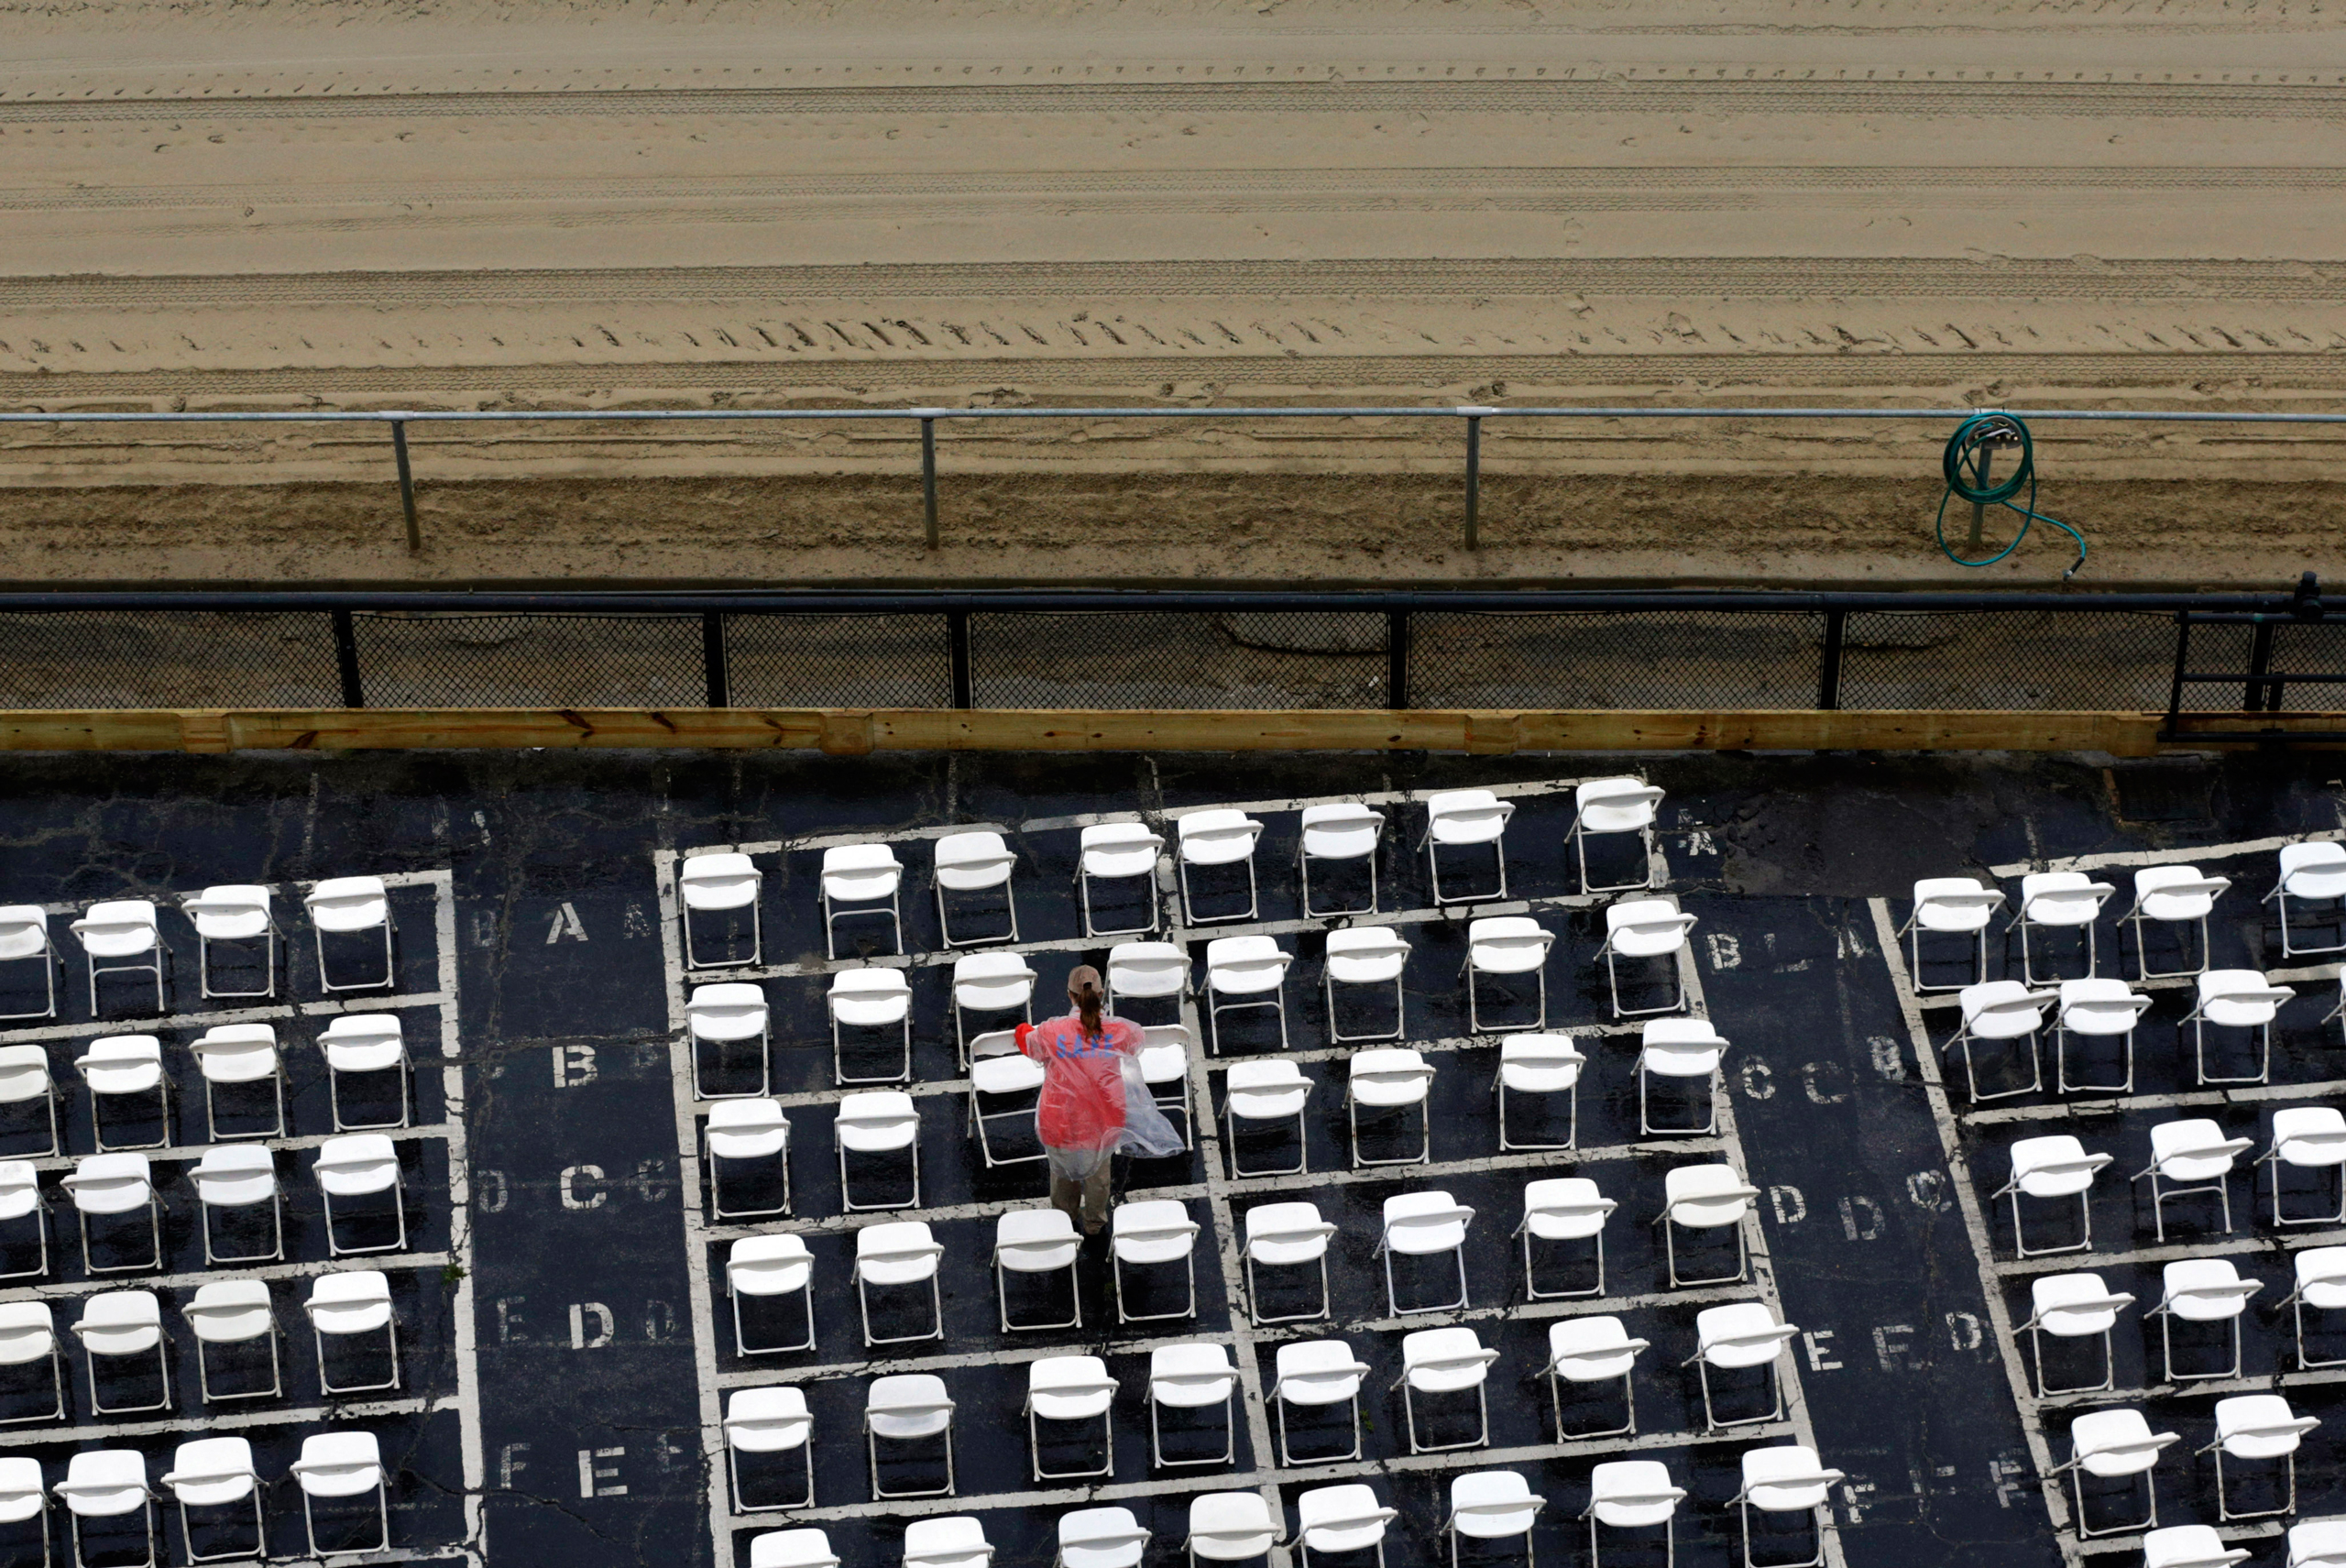 An usher clears water off of trackside seats as rain falls before the 141st Preakness Stakes horse race at Pimlico Race Course in Baltimore, Md., on May 21, 2016.